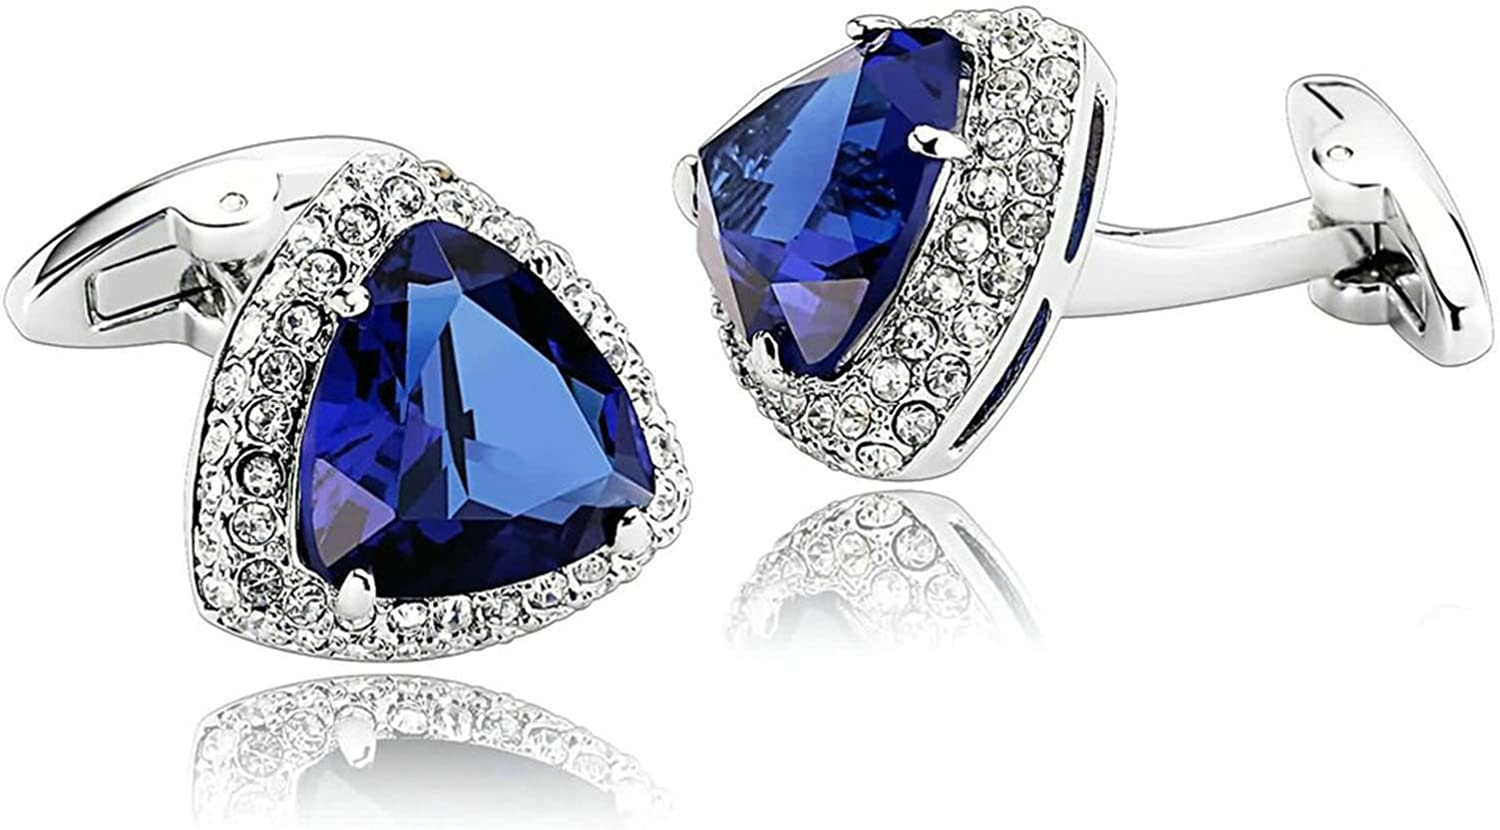 Aooaz Cufflinks for Men Stainless Steel Inlaid Cubic Zirconia Triangle Cufflinks White Blue White Blue